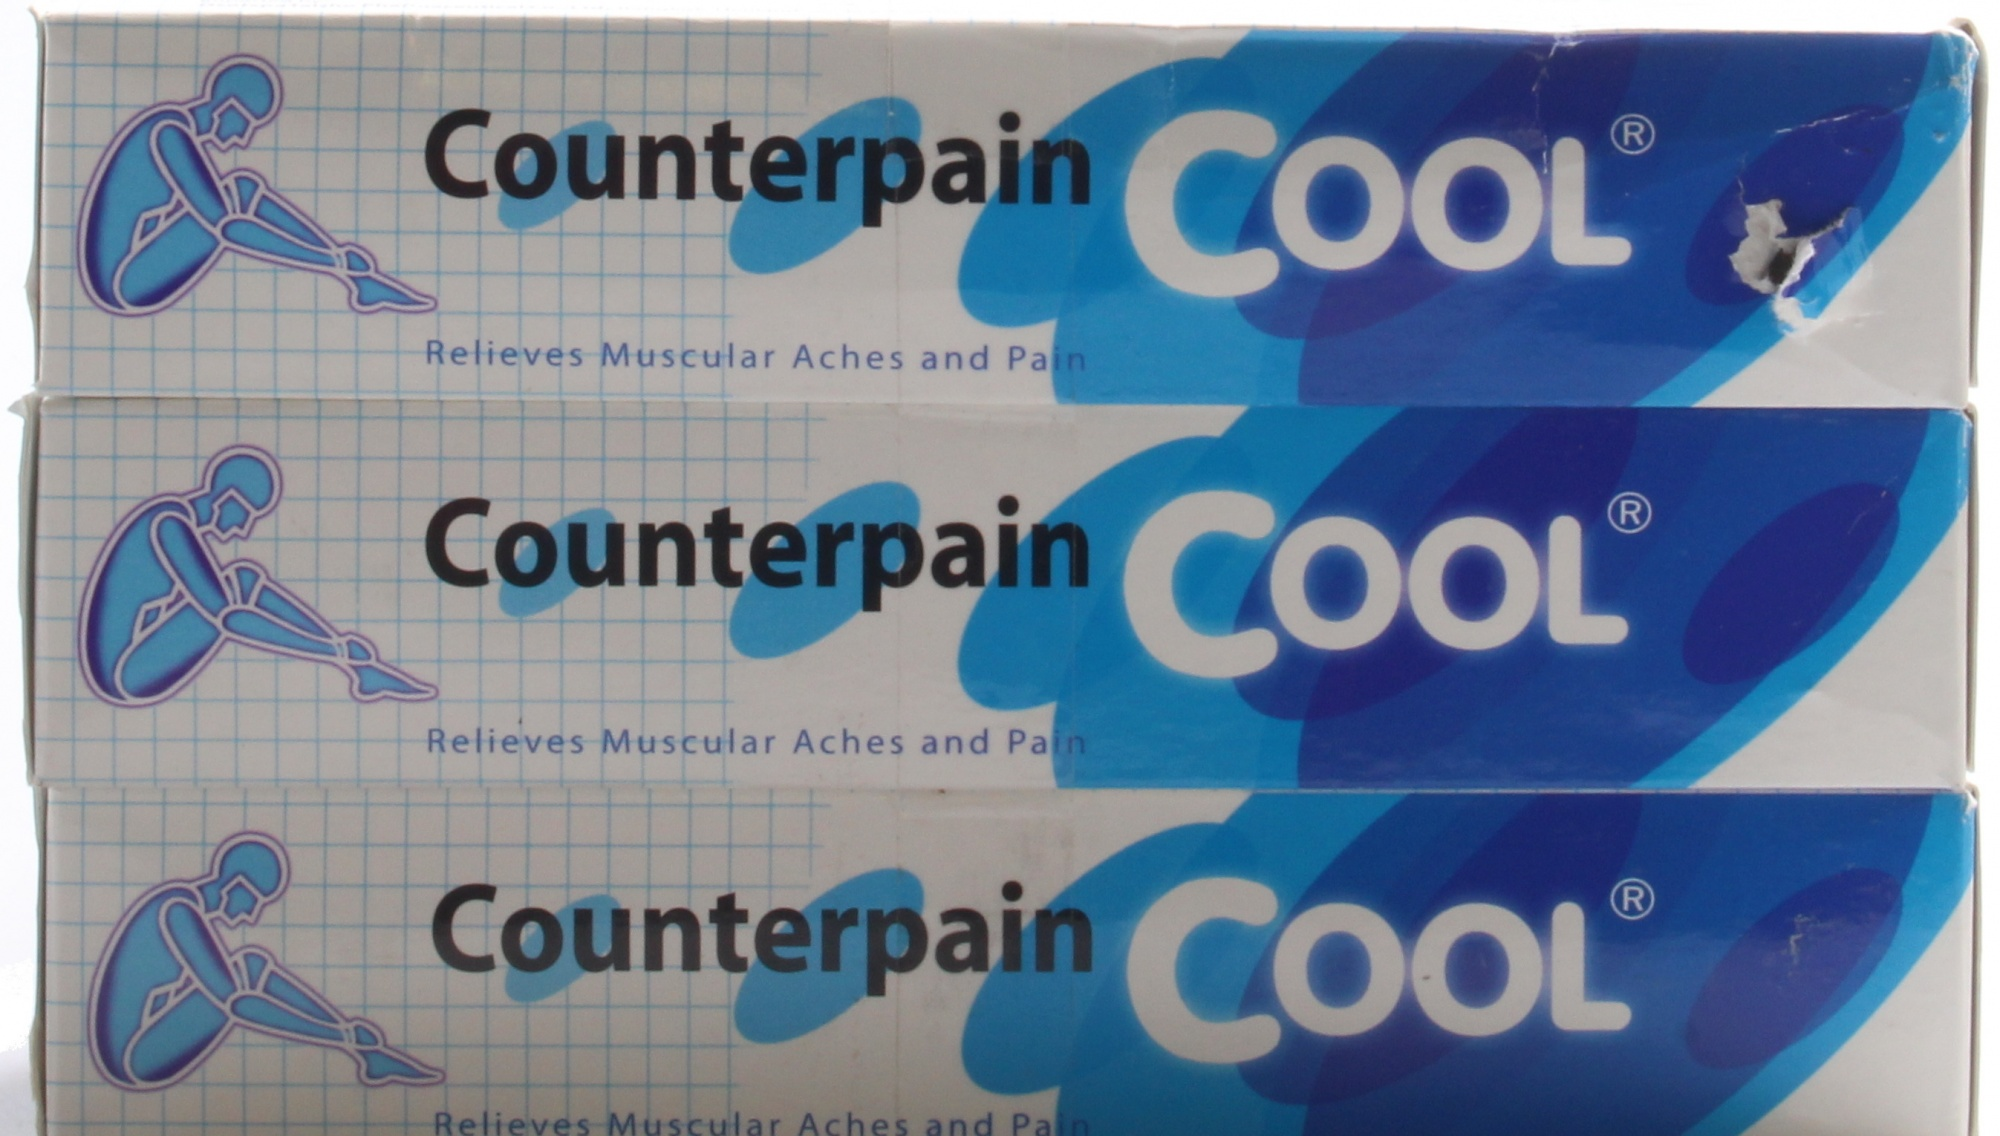 Counterpain Cream Beauty Buy Online From 60g